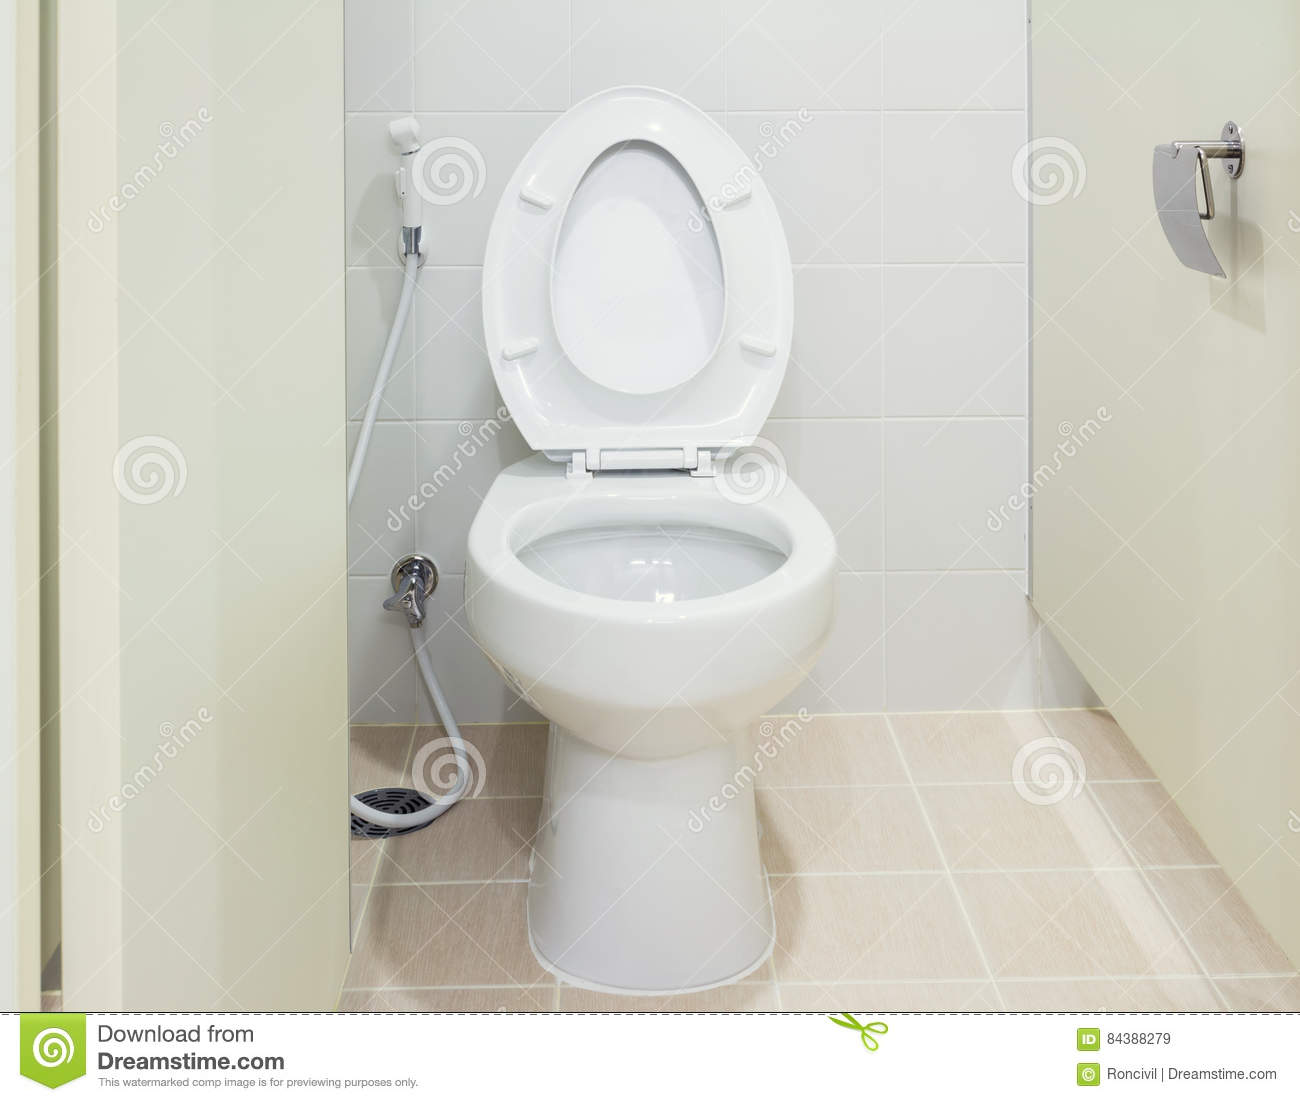 Water Closet Toilet Stock Image Image Of Domestic Drainage